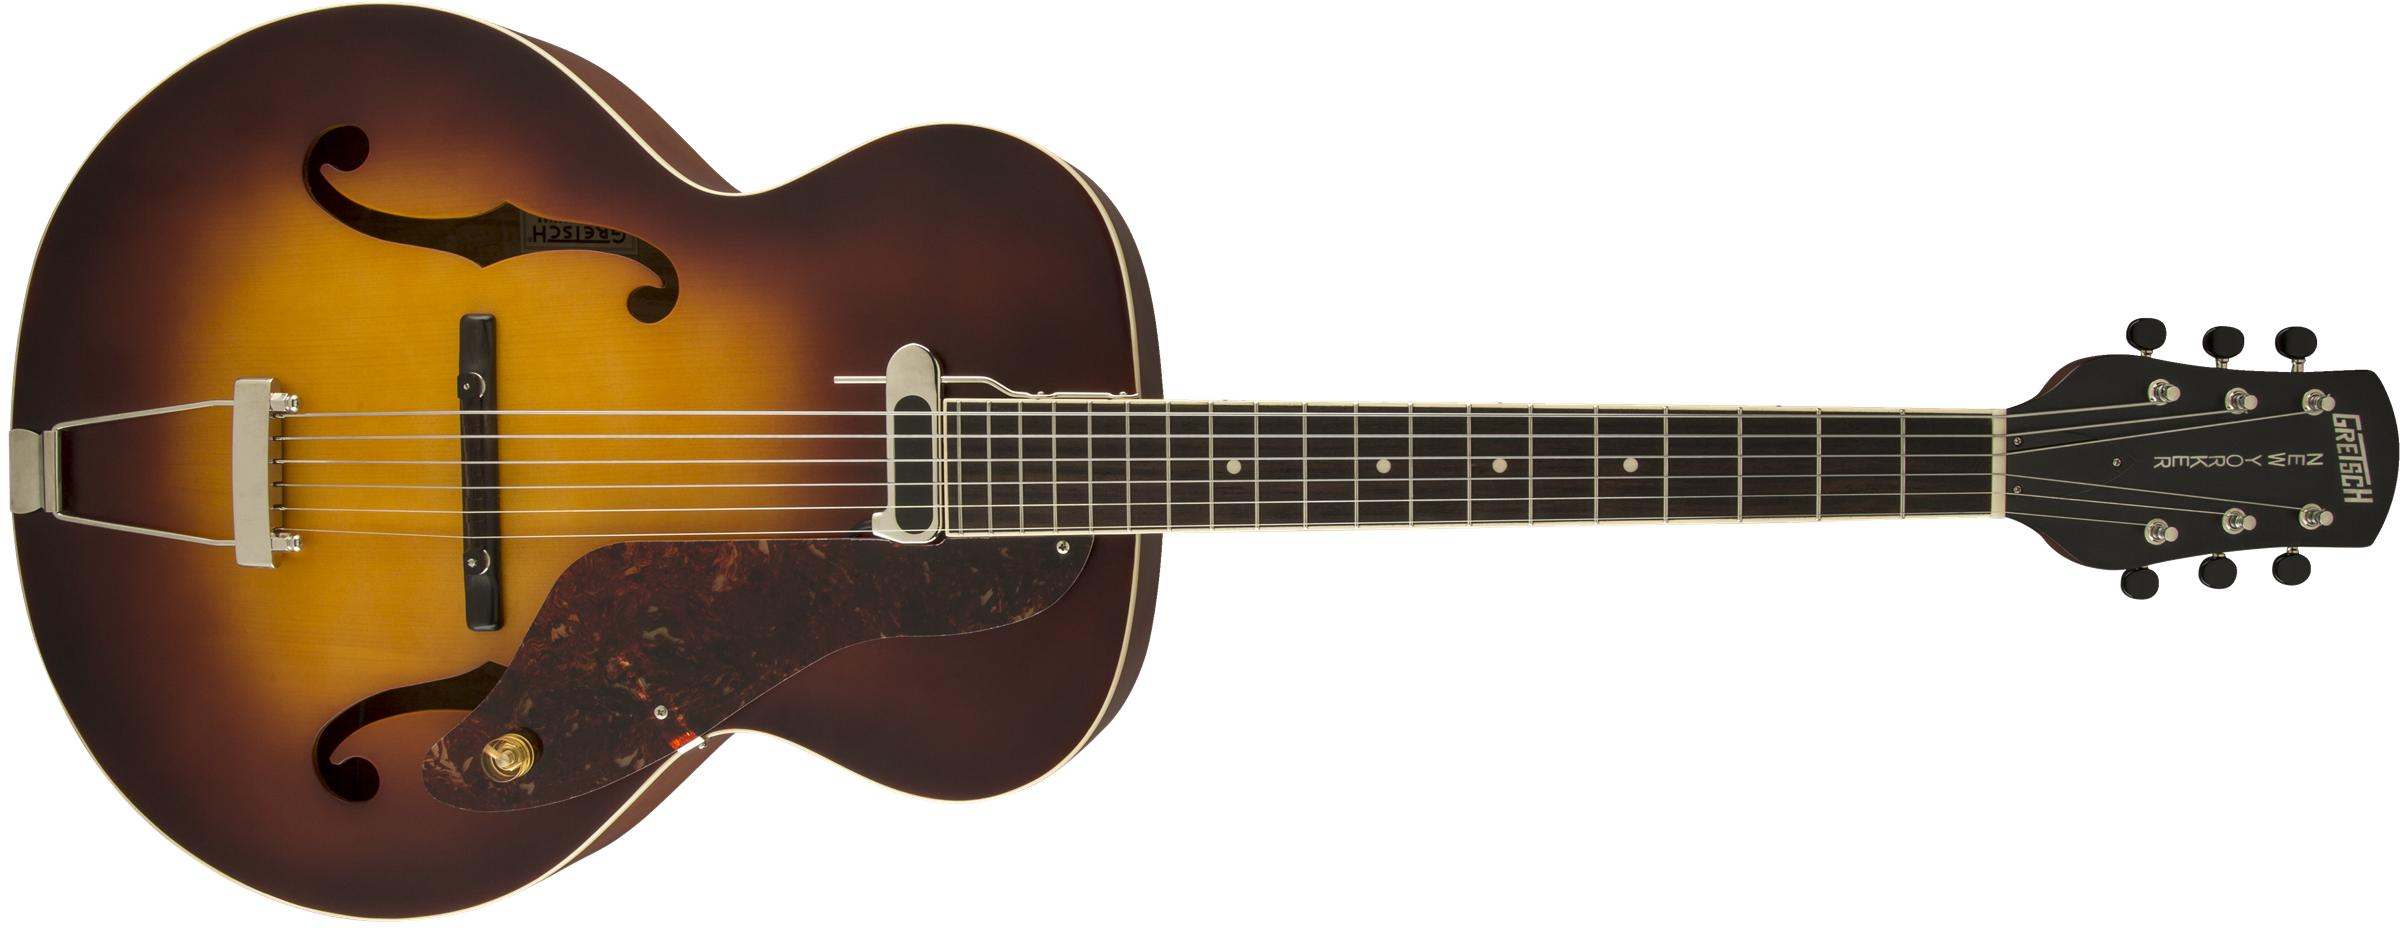 Gretsch G9555 New Yorker Archtop Guitar With Pickup Semi Gloss